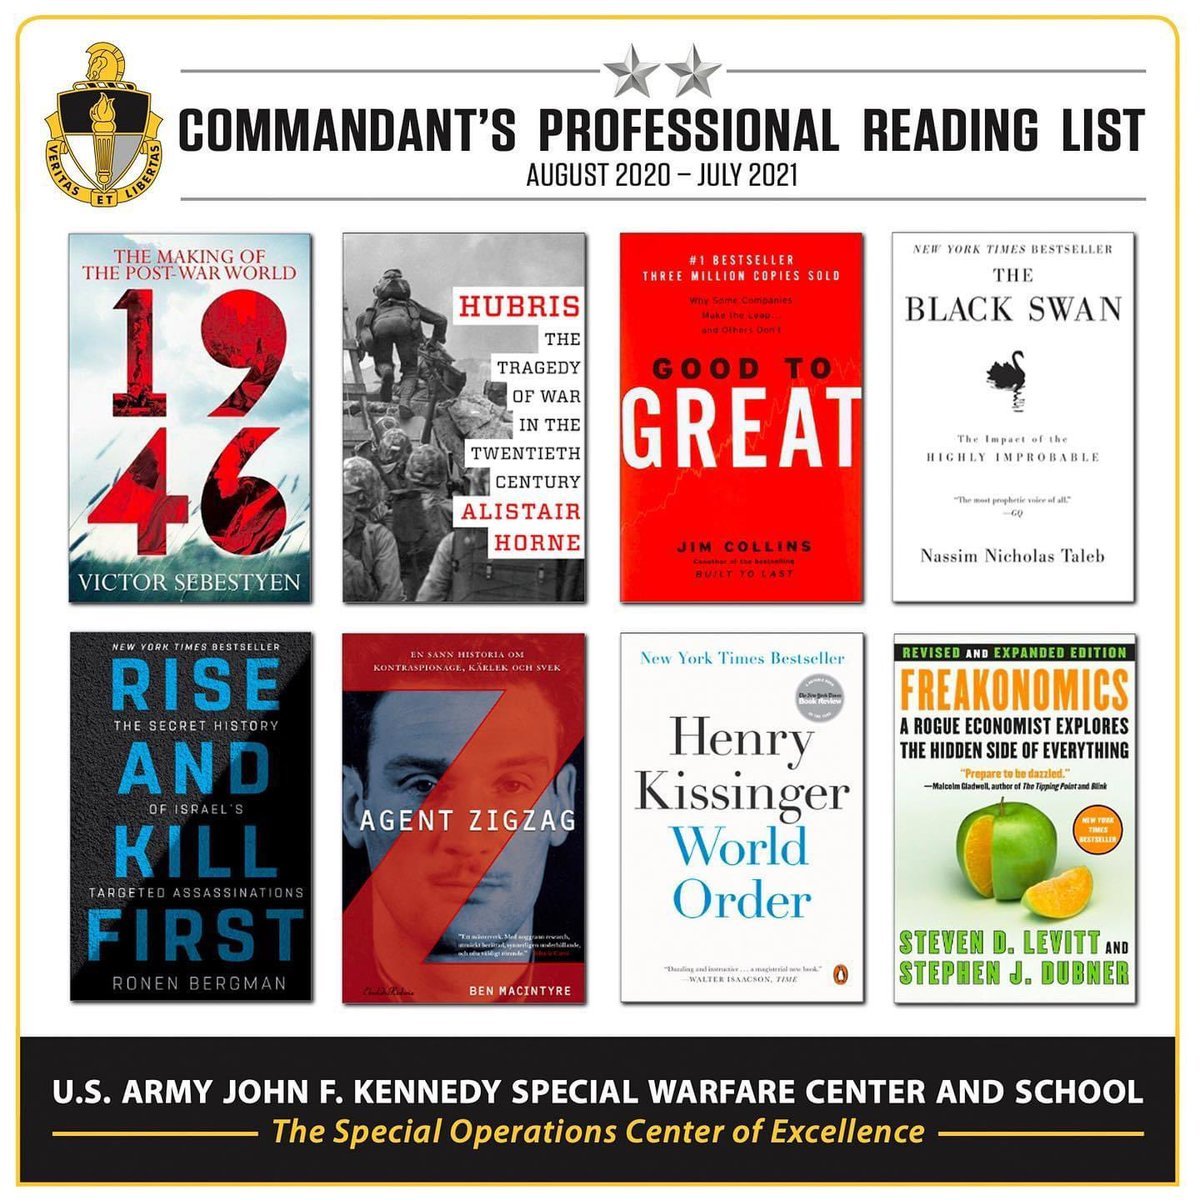 The U.S. Army Special Operations Center of Excellence (SOCoE) Commandant's professional reading list is out. Please feel free to share, some awesome books in his lineup! #leadersarereaders #specialoperations #readinglist #militaryhistory #nationalsecurity #ussocom #usarmypic.twitter.com/iglk2ljJFS